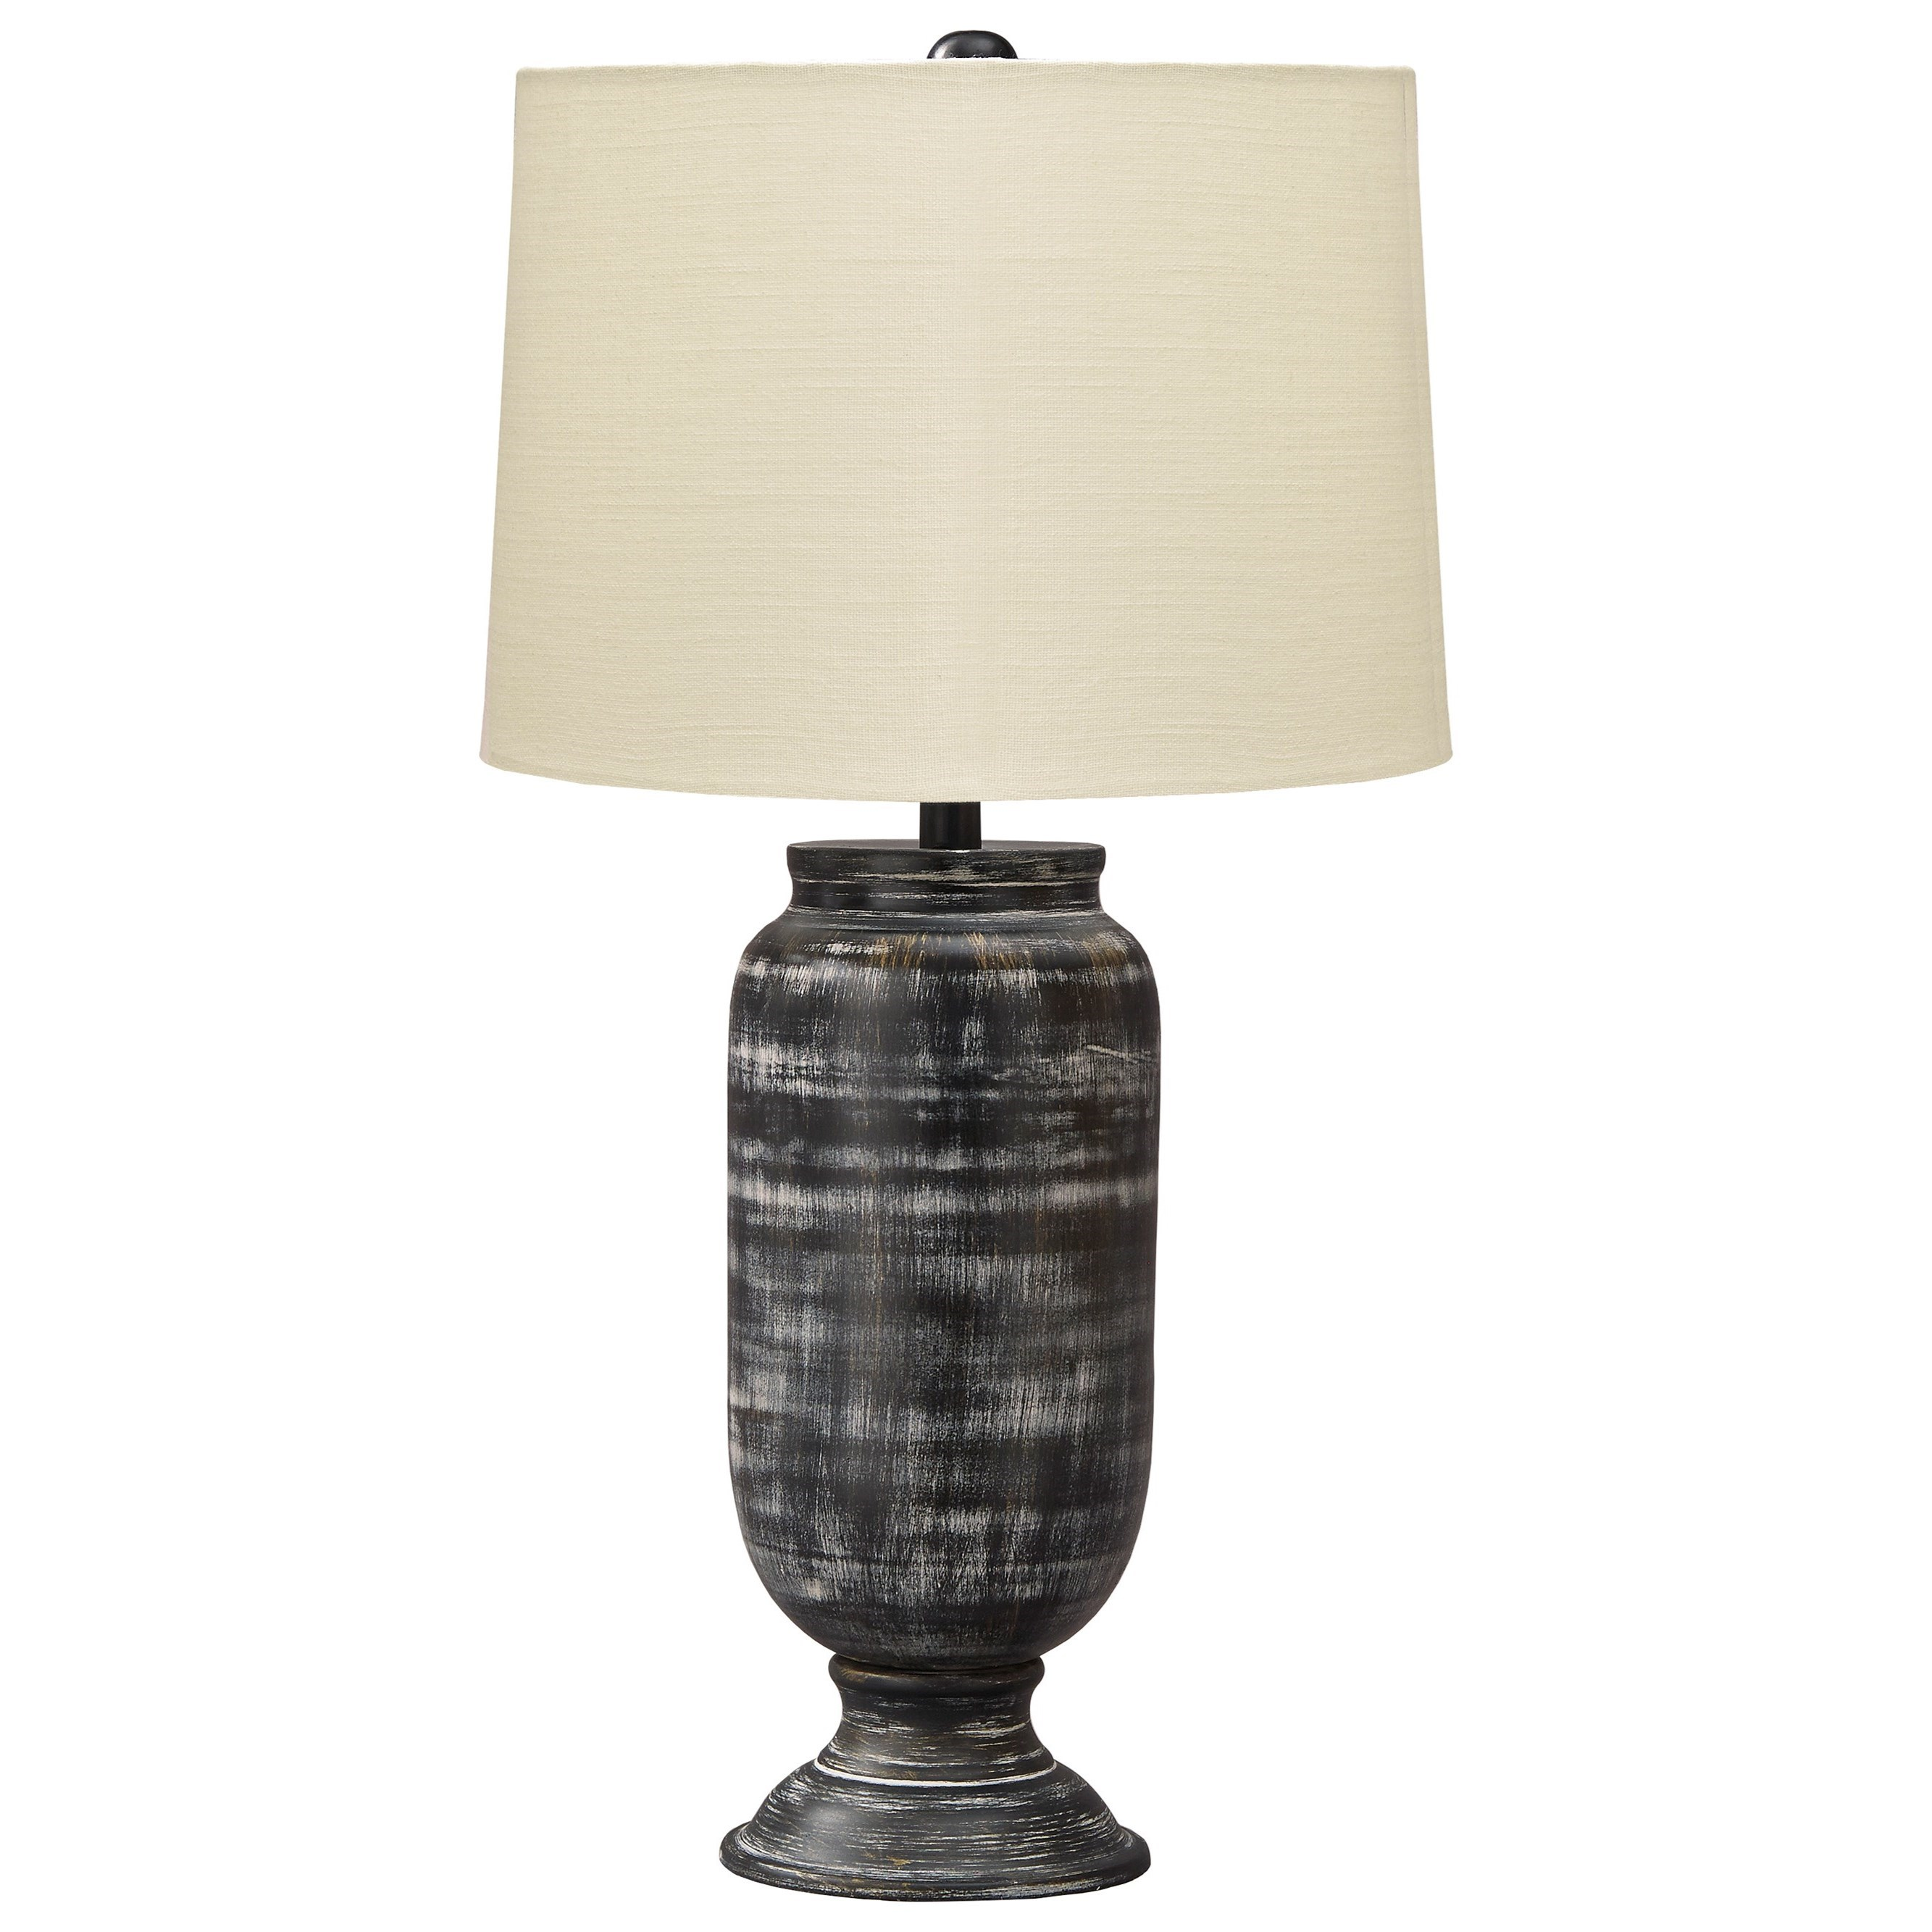 Lamps - Casual Mandelina Black Metal Table Lamp by Signature Design by Ashley at Lindy's Furniture Company